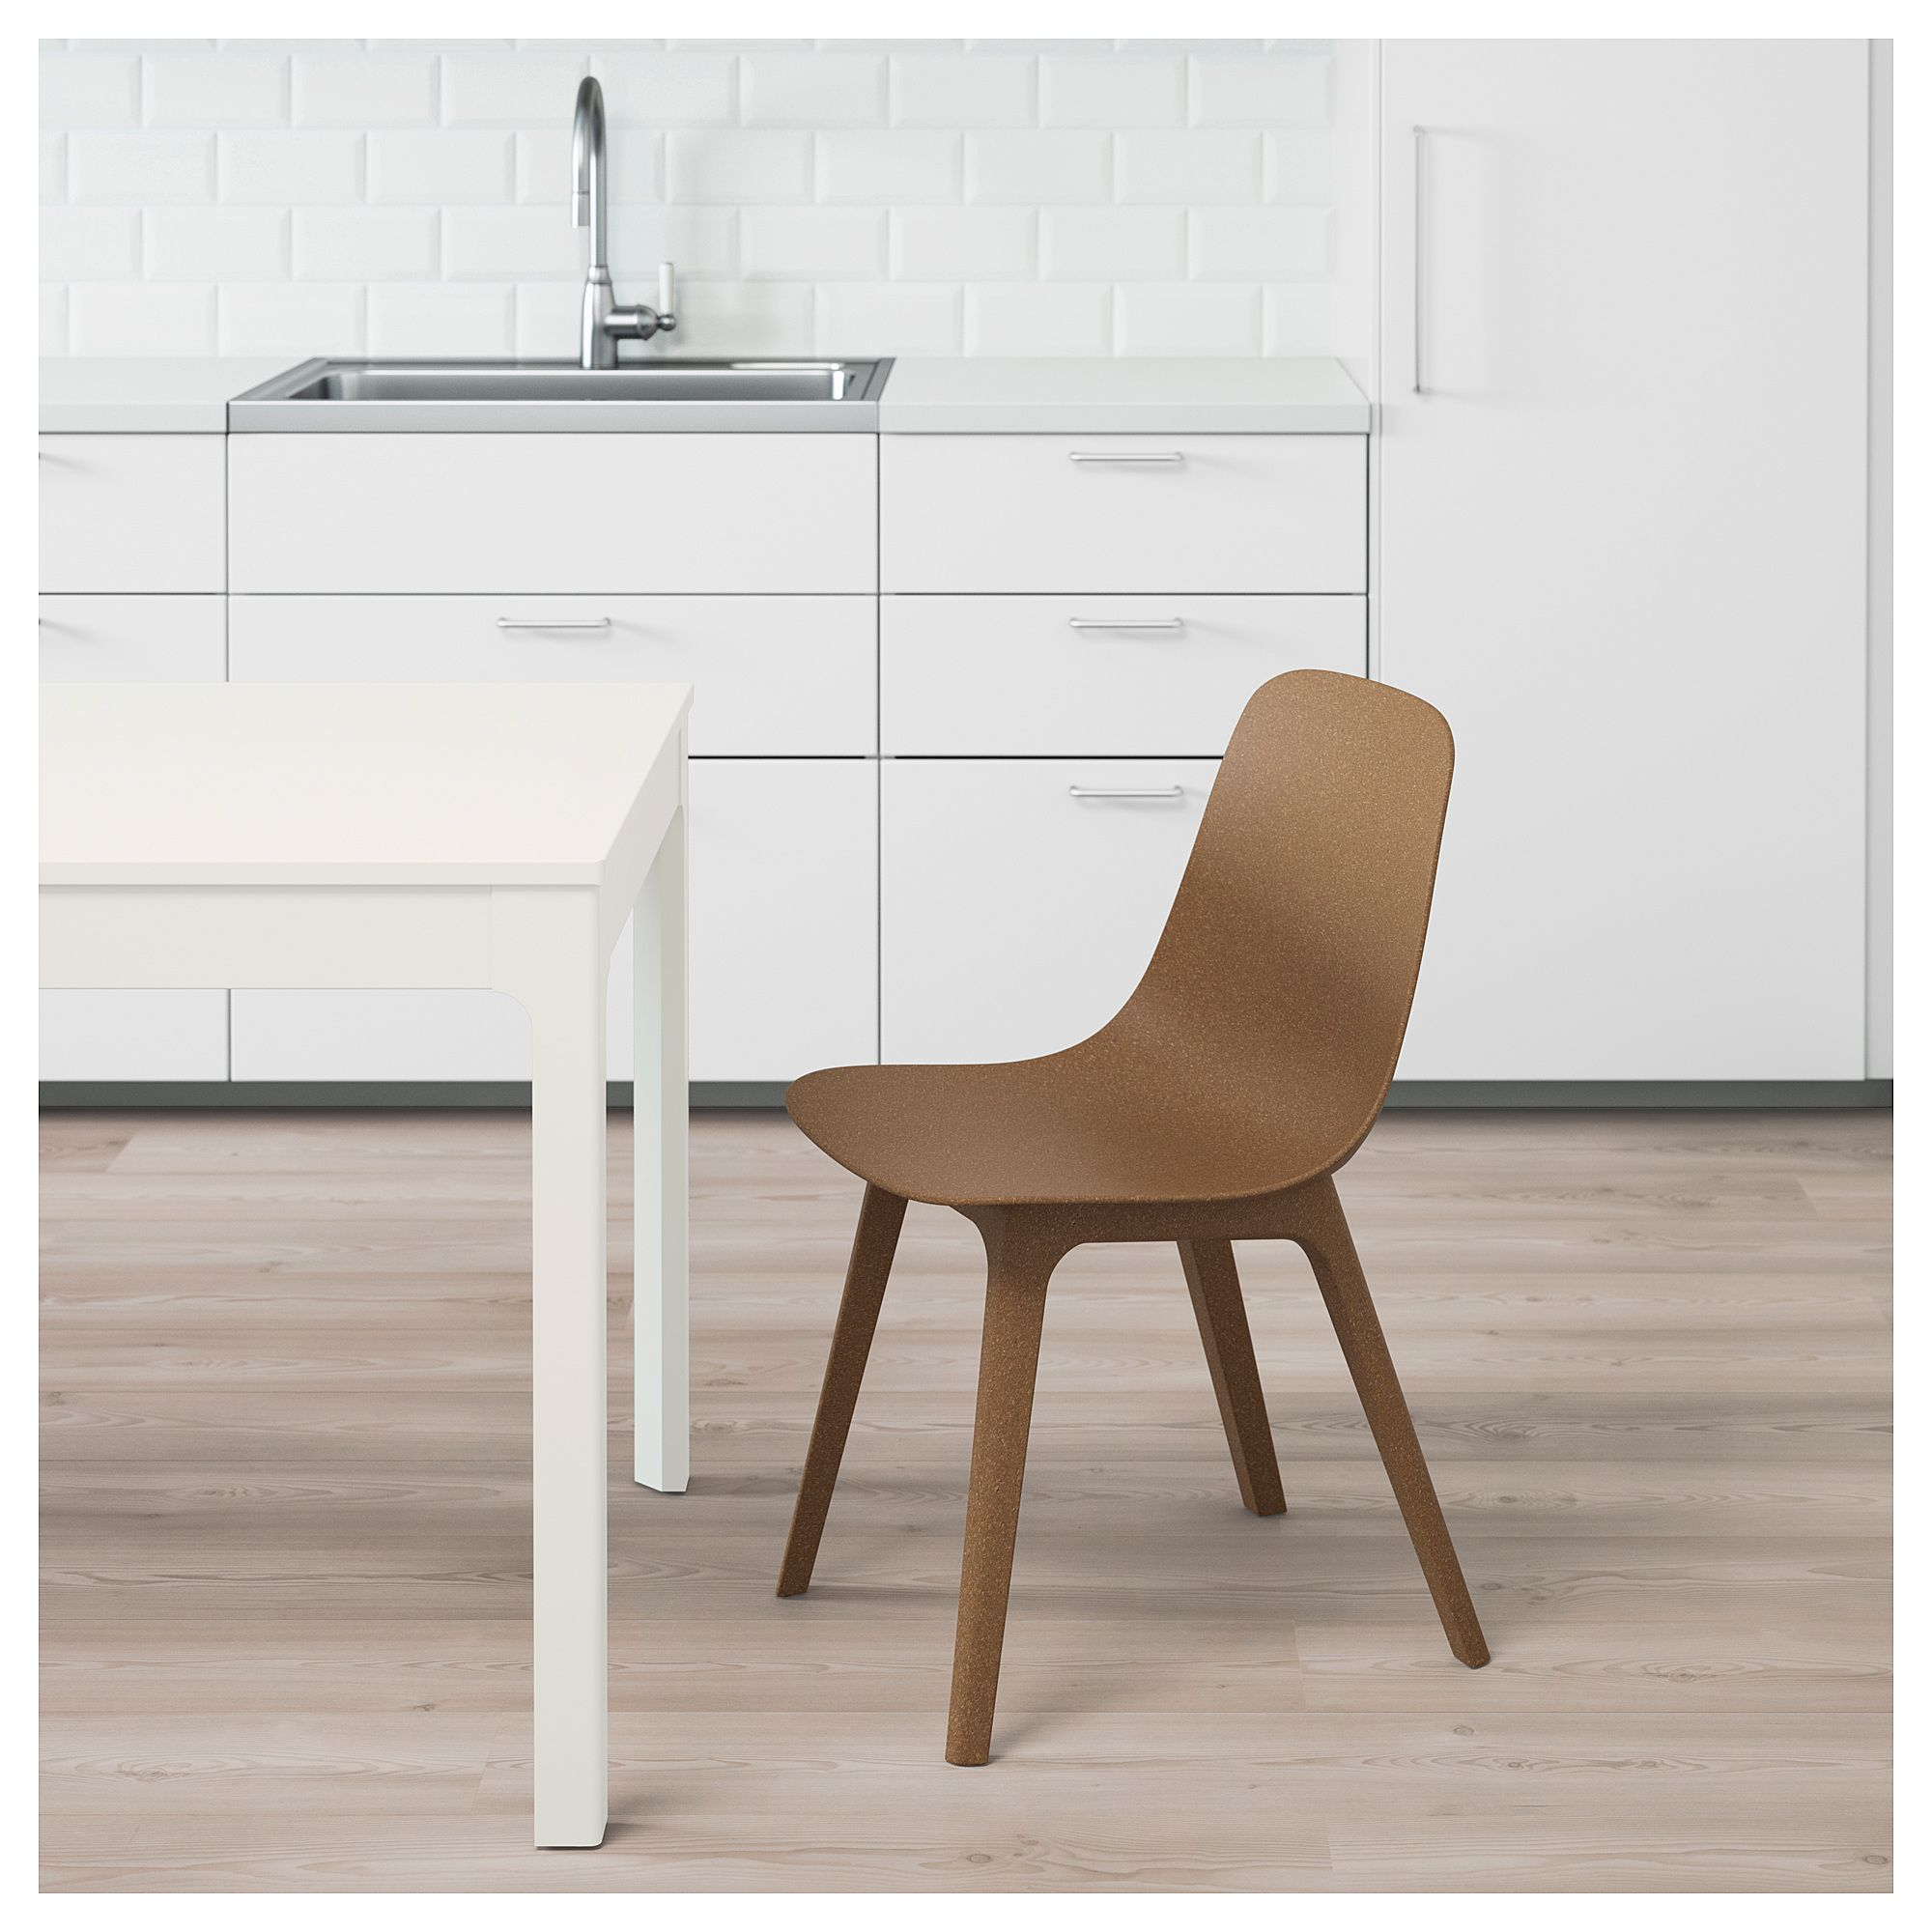 Ikea Odger Chair Brown Products In 2019 Retro Dining